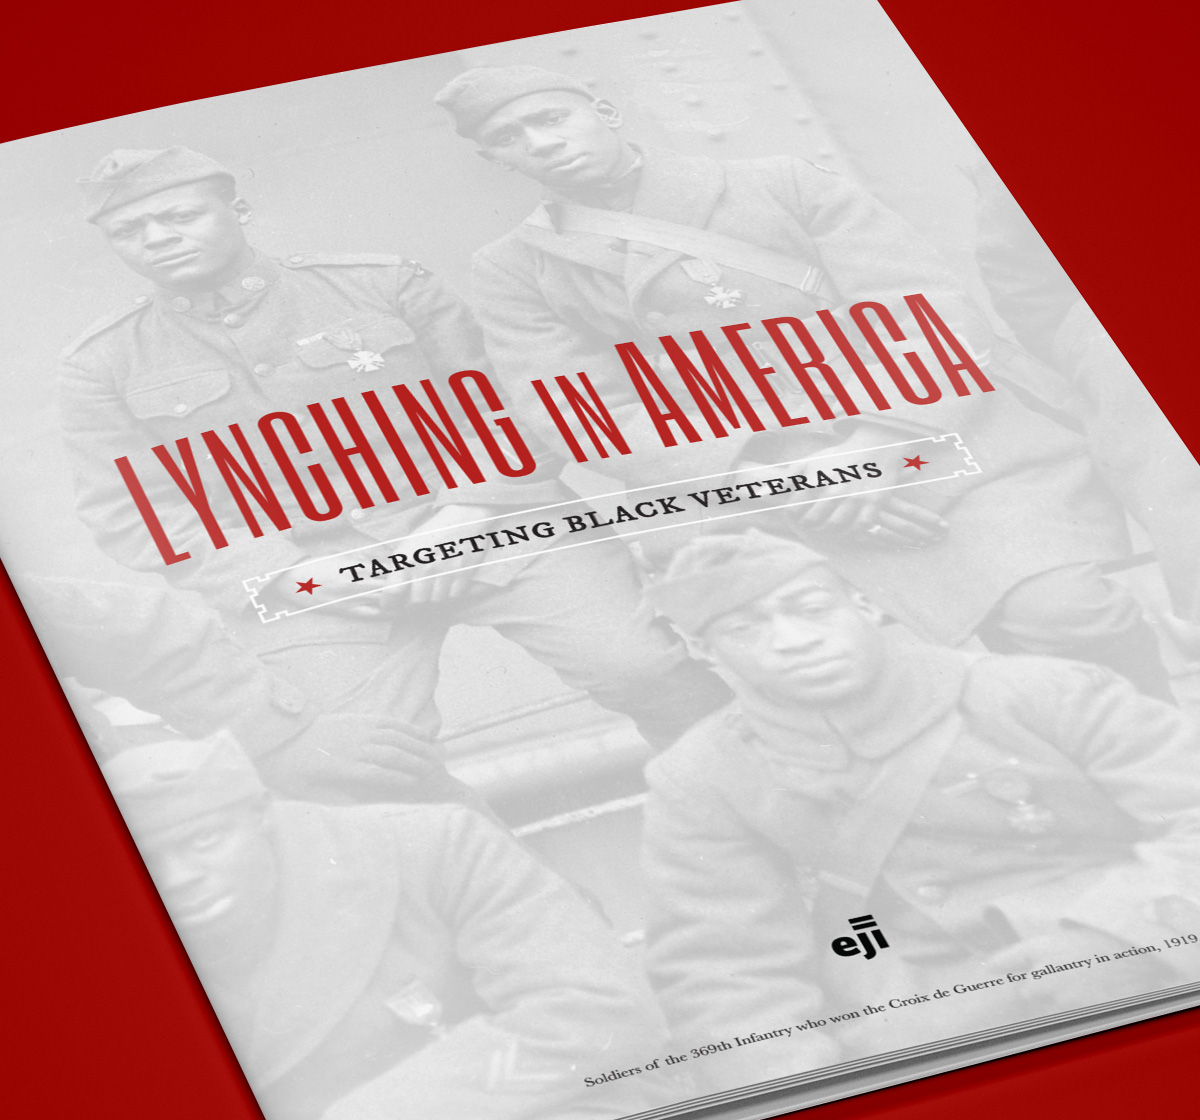 Lynching in America Report